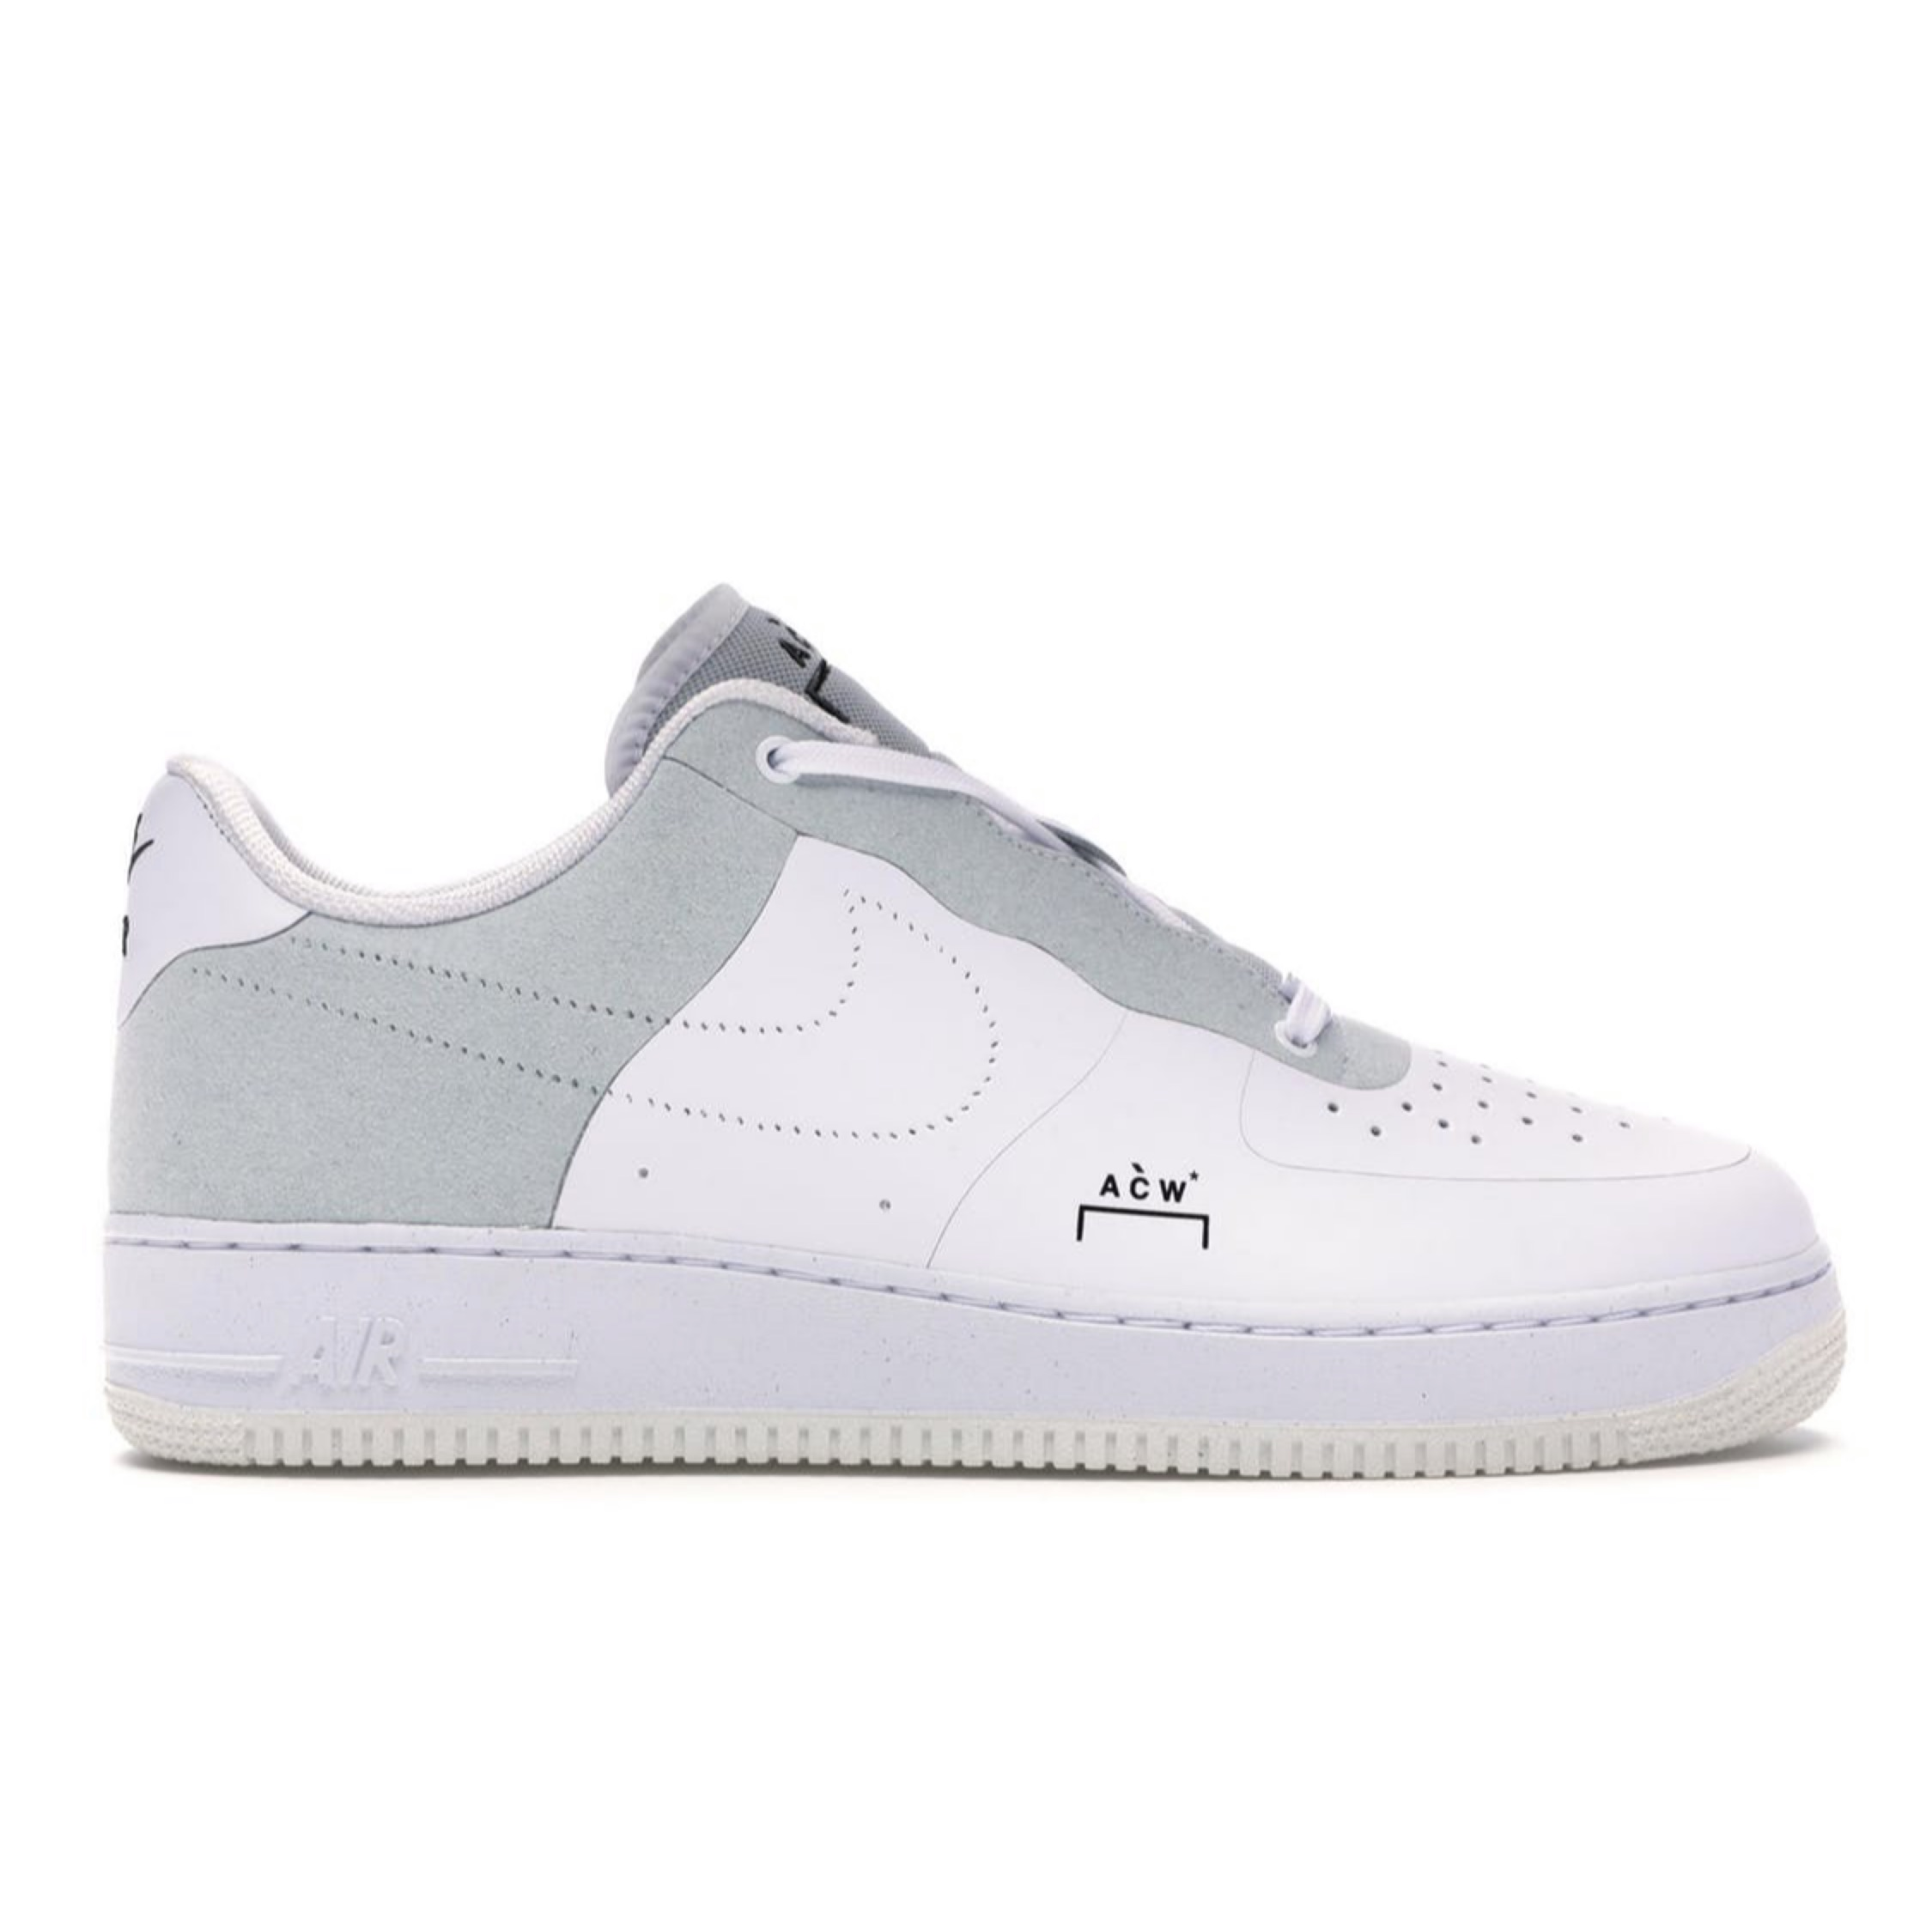 Nike Airforce 1 A Cold Wall White